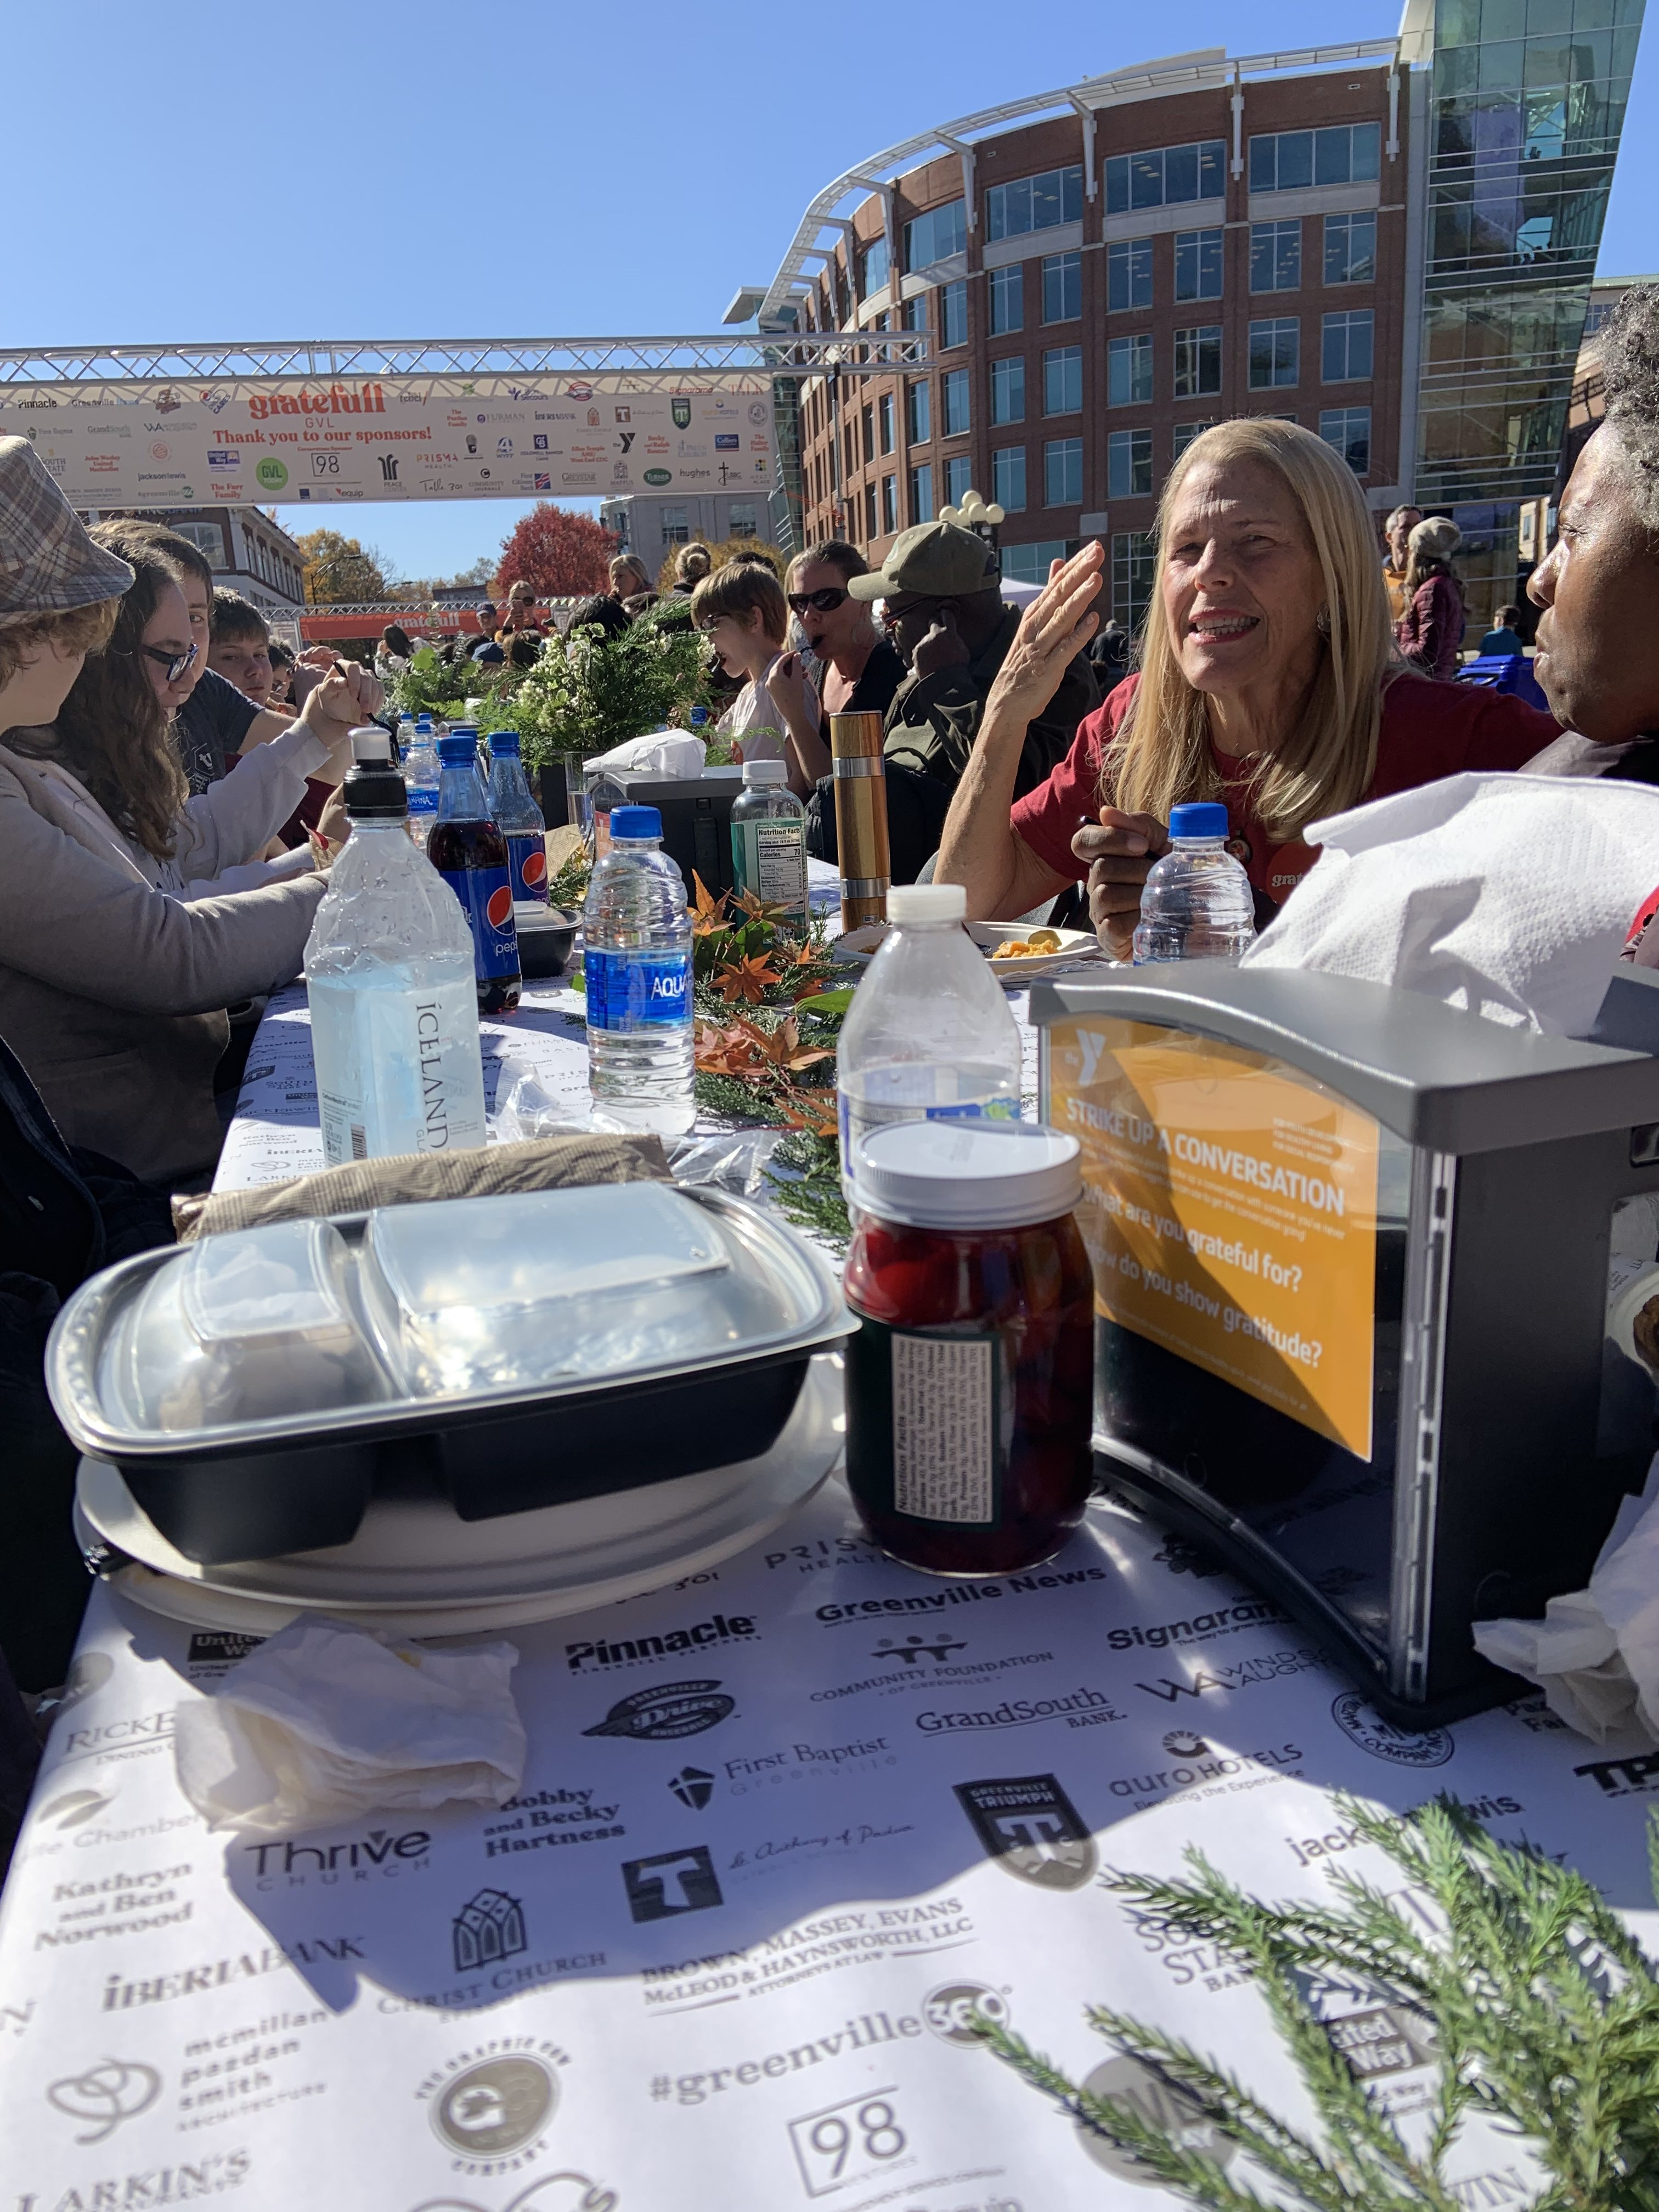 Gratefull GVL: A Potluck Dinner With The Entire City